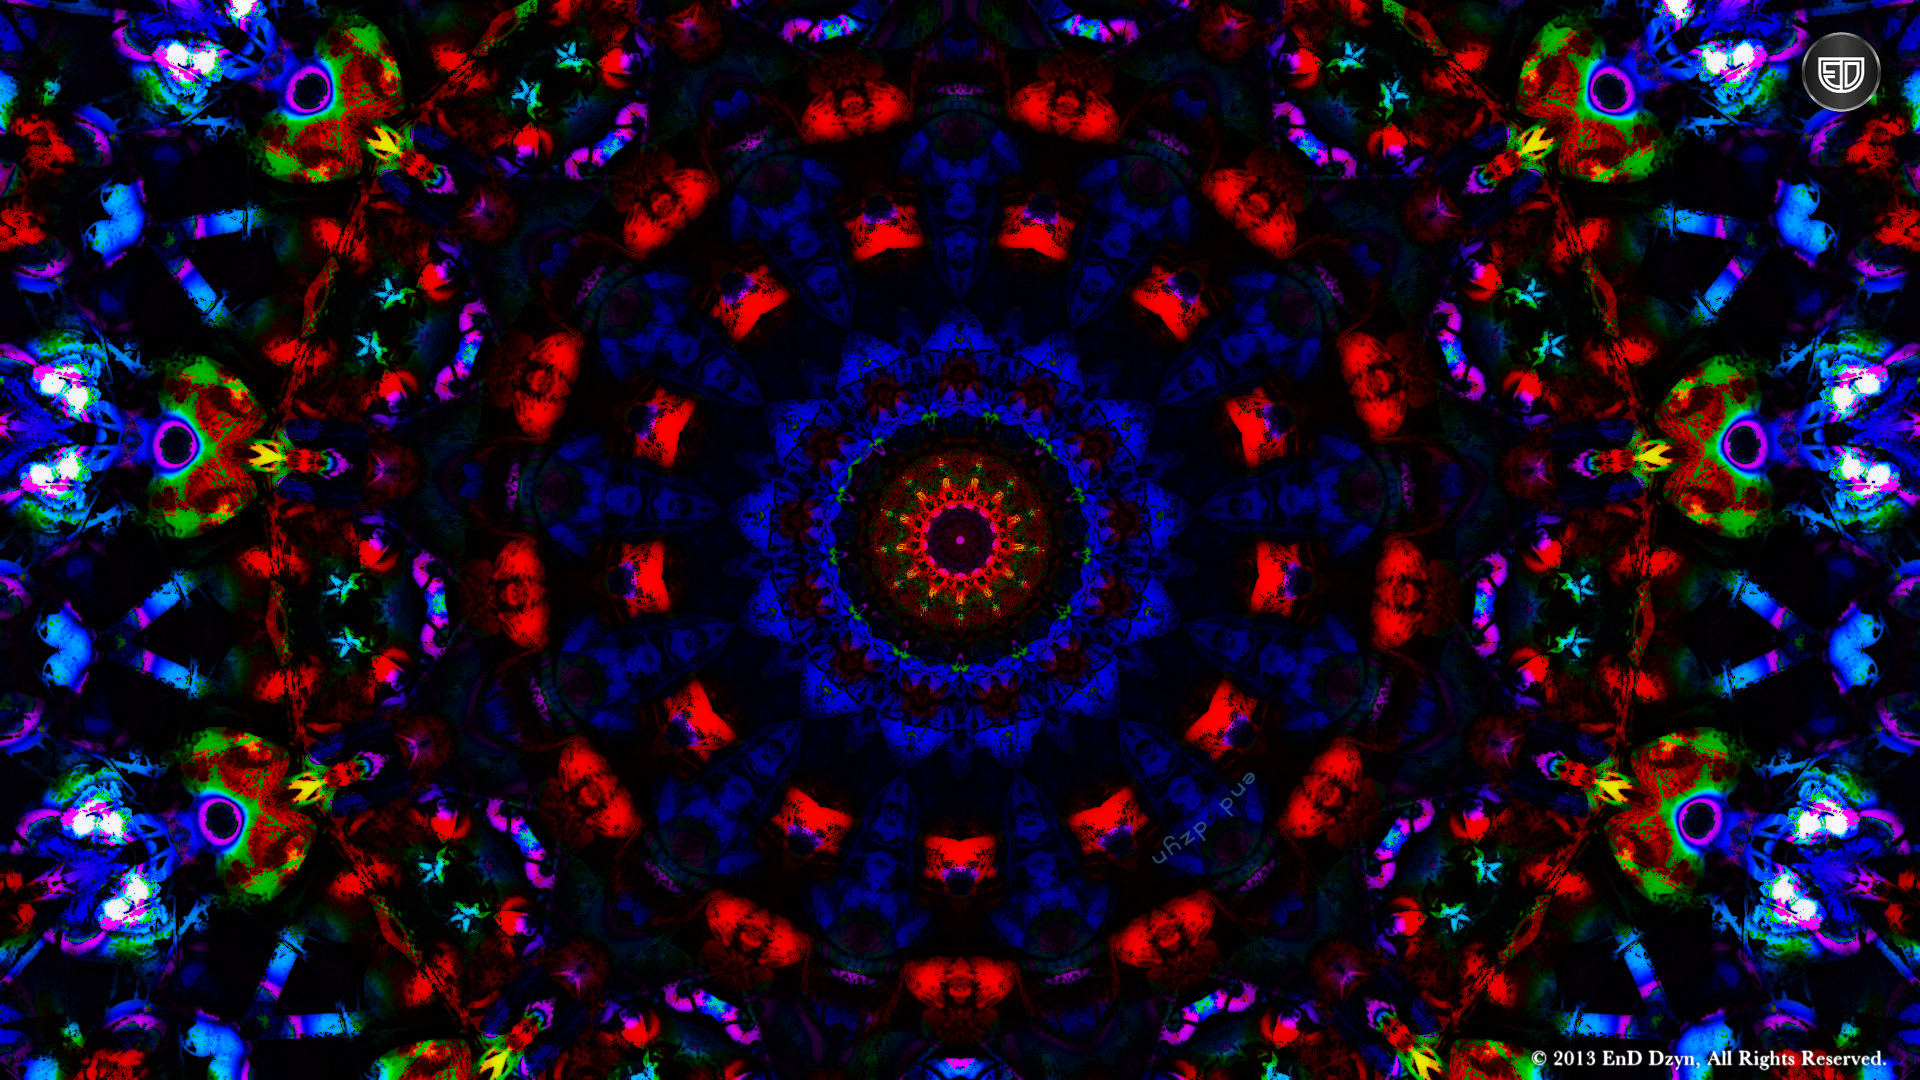 Wallpaper Background Colorful Trippy 3D Psychedelic HD Wallpaper 1920x1080